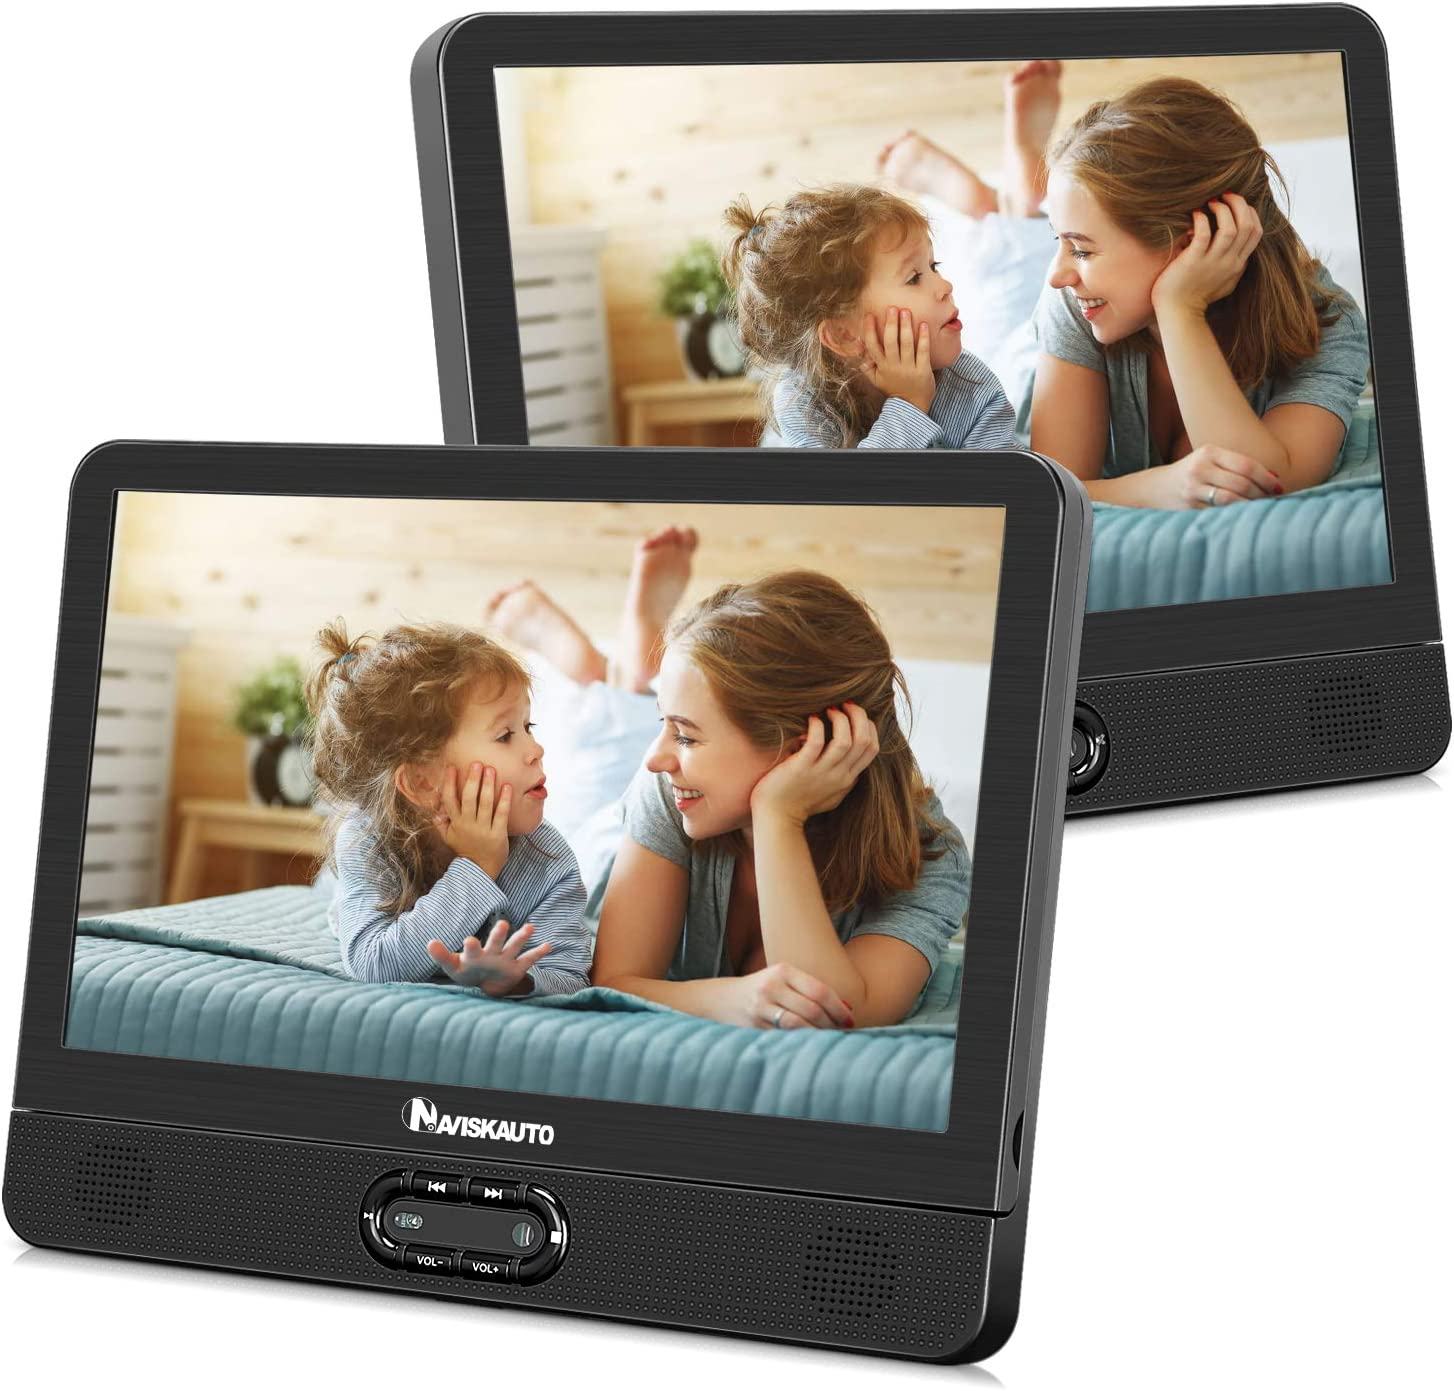 NAVISKAUTO 12 inch Portable DVD/CD Player Dual Screen, Headrest Video Player with Rechargeable Battery, Last Memory and USB/SD Card Reader